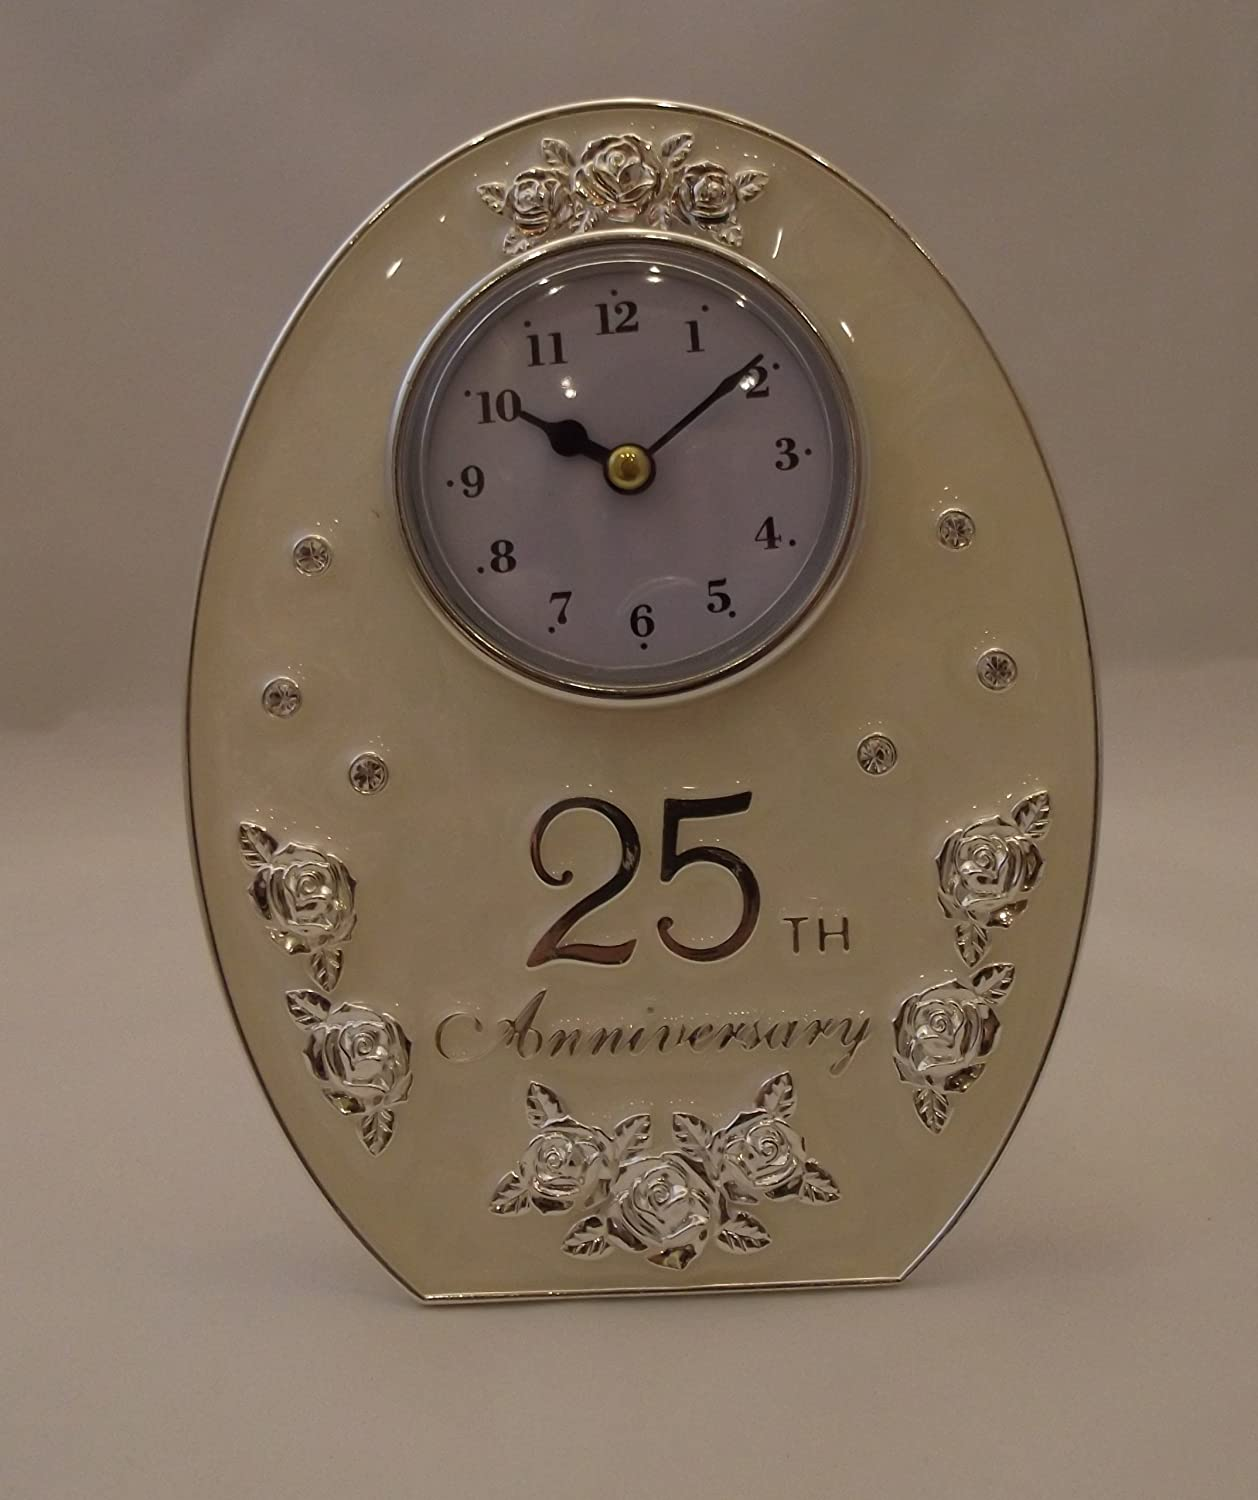 NEW SILVER & IVORY WHITE MARBLED 25TH ANNIVERSARY OVAL CLOCK SILVER WEDDING GIFT The Album Shop 20850